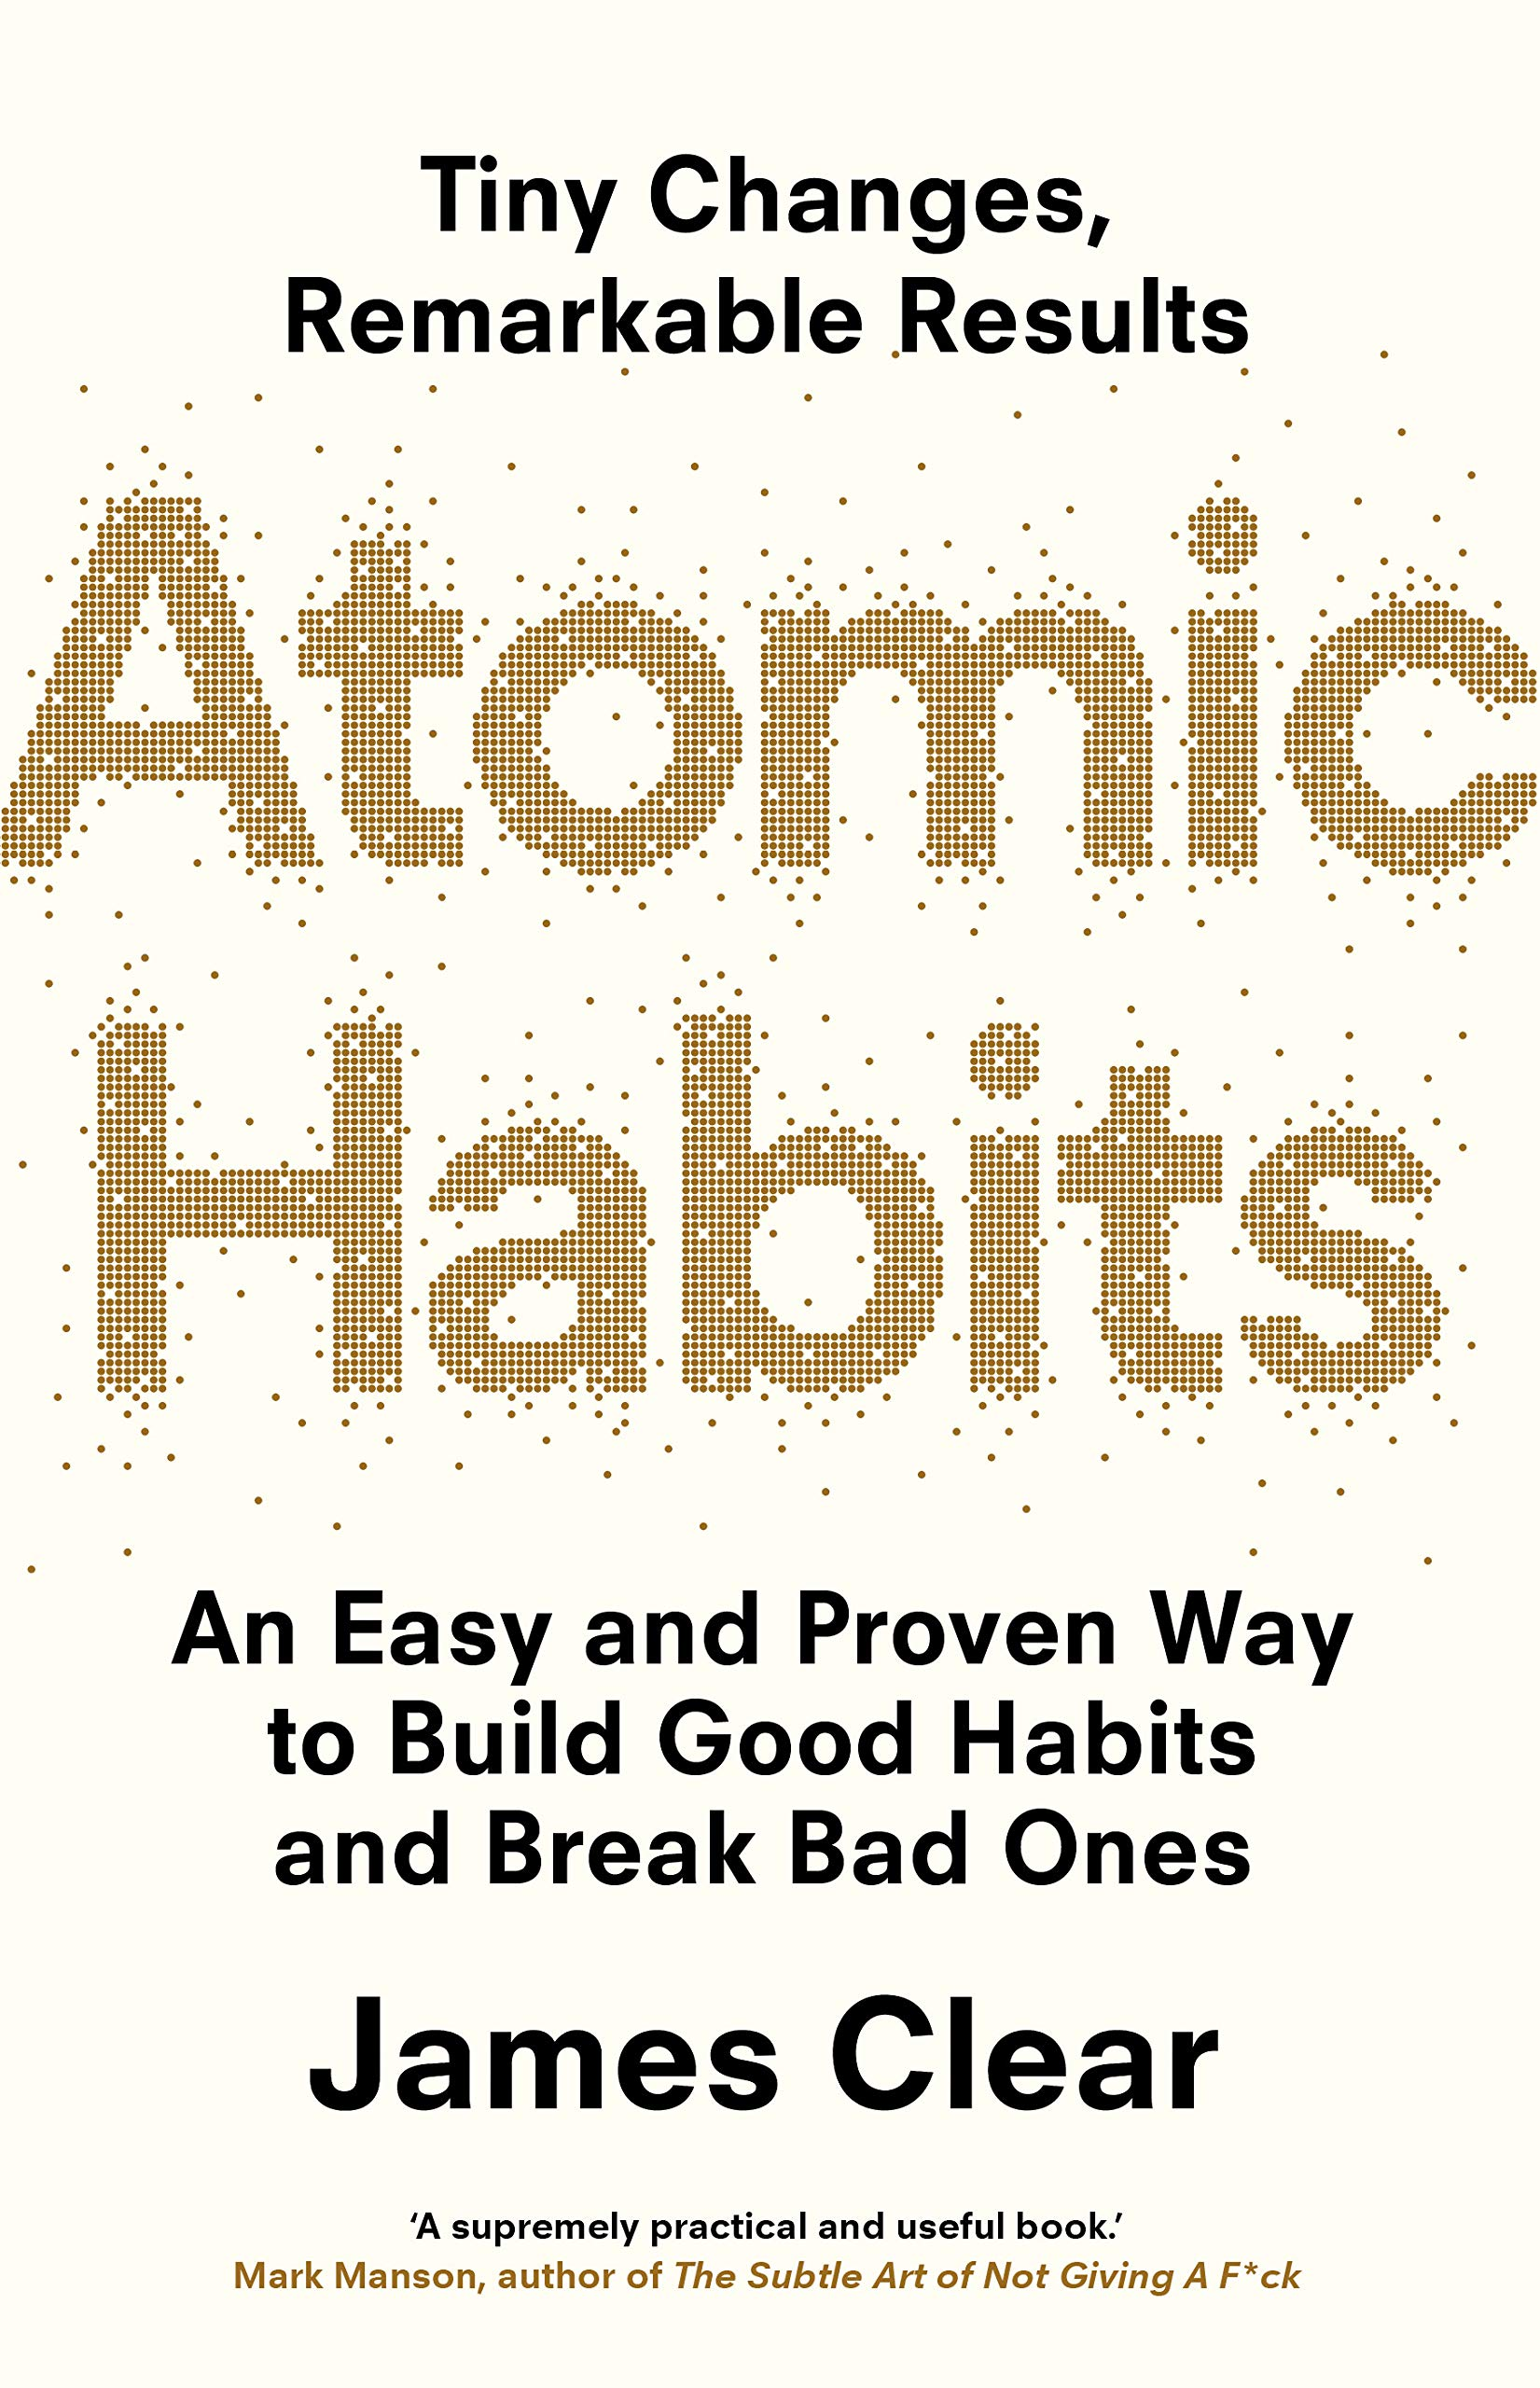 Buy Atomic Habits Book Online at Low Prices in India | Atomic Habits  Reviews & Ratings - Amazon.in